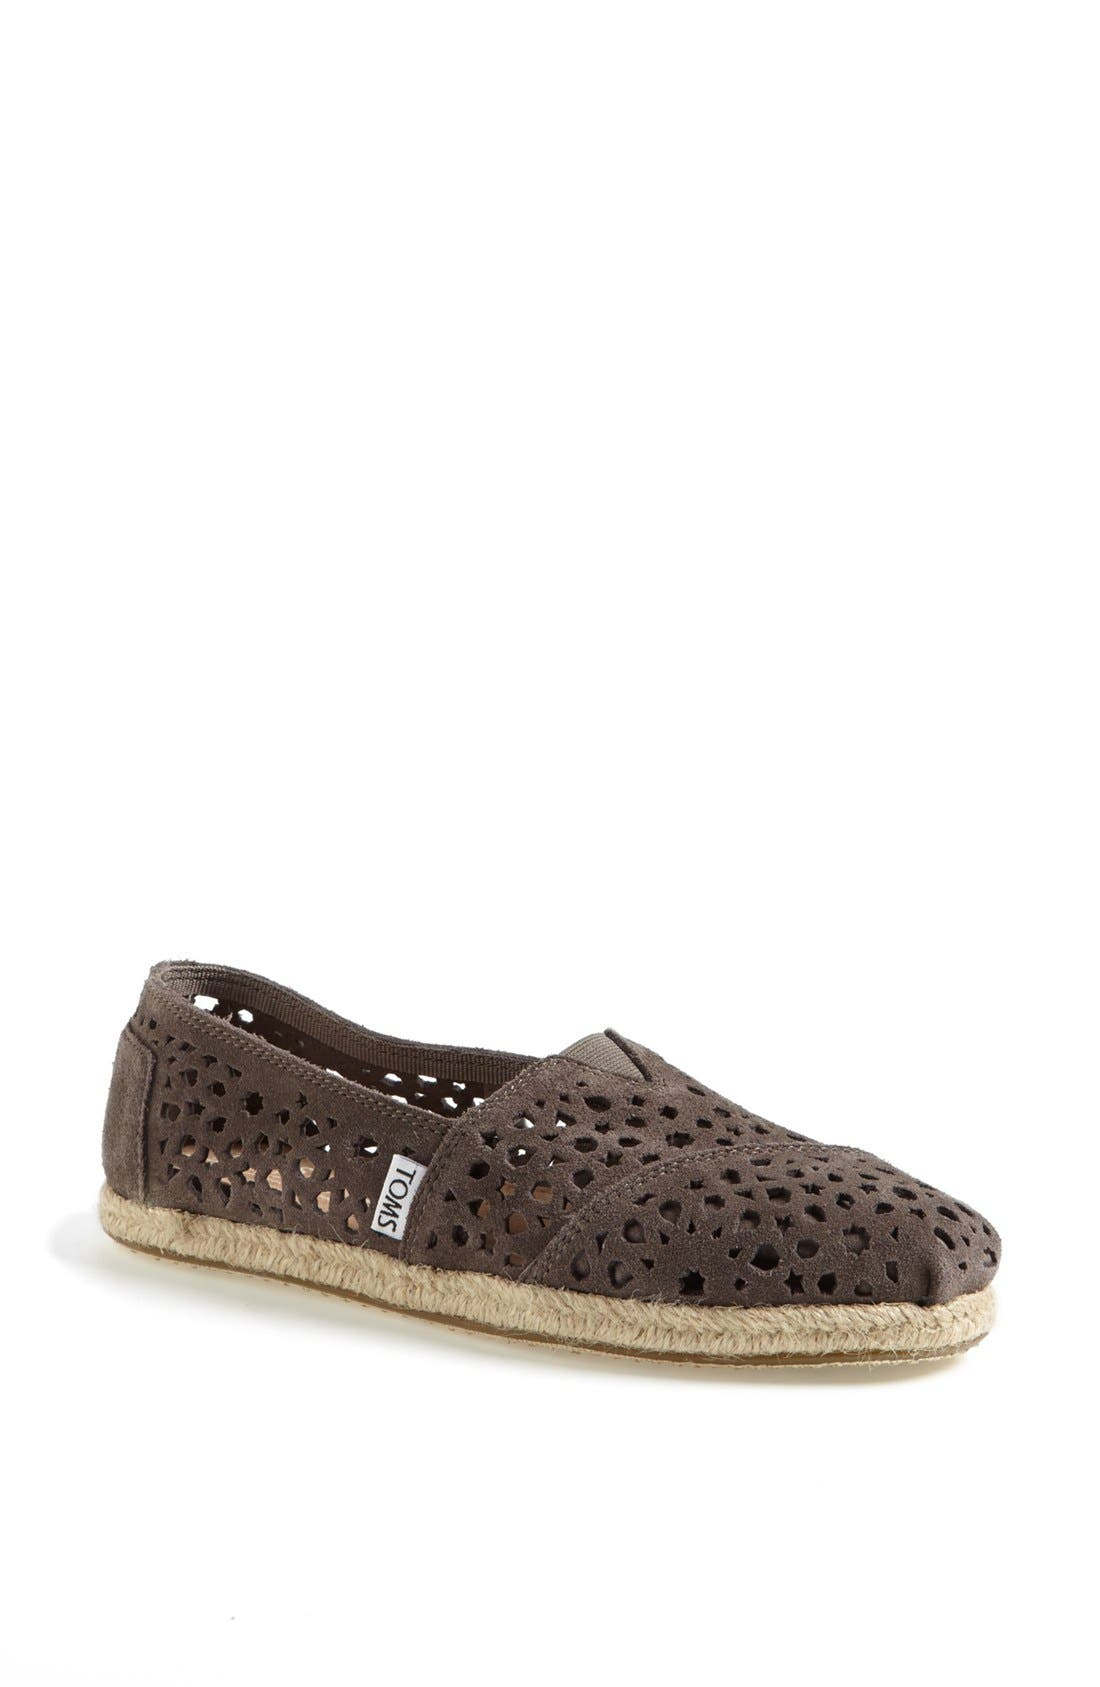 Alternate Image 1 Selected - TOMS 'Classic - Moroccan Cutout' Slip-On (Women)